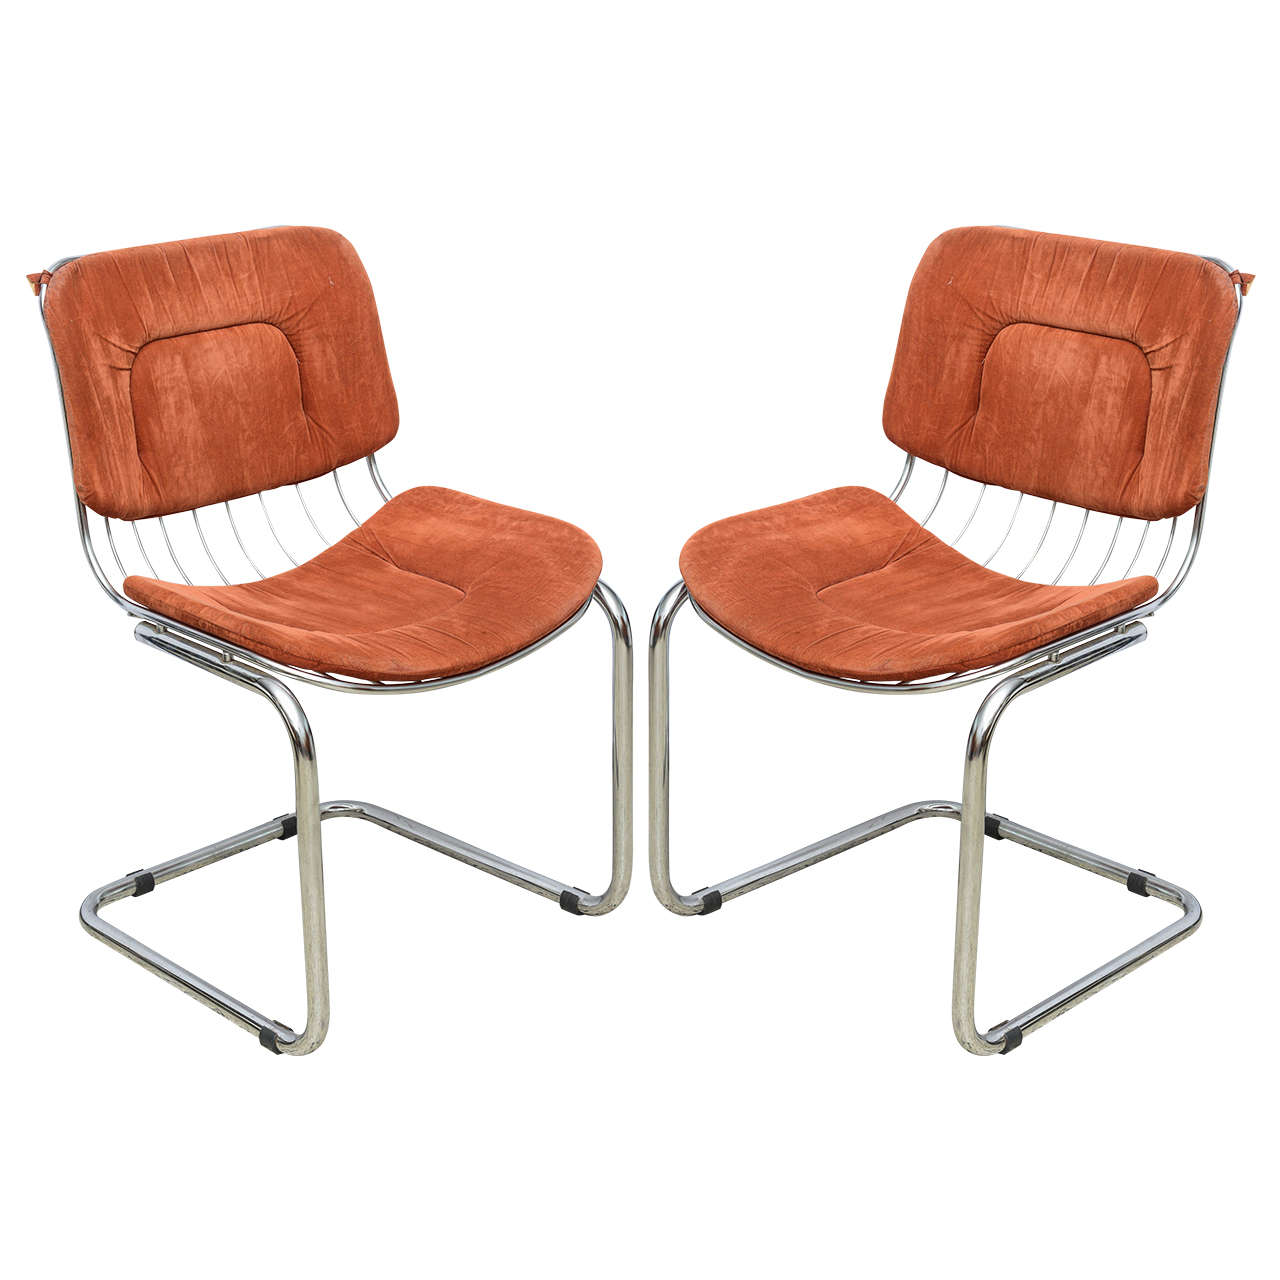 Merveilleux Pair Of Italian Chrome Wire Chairs, Italy Late 1960s For Sale